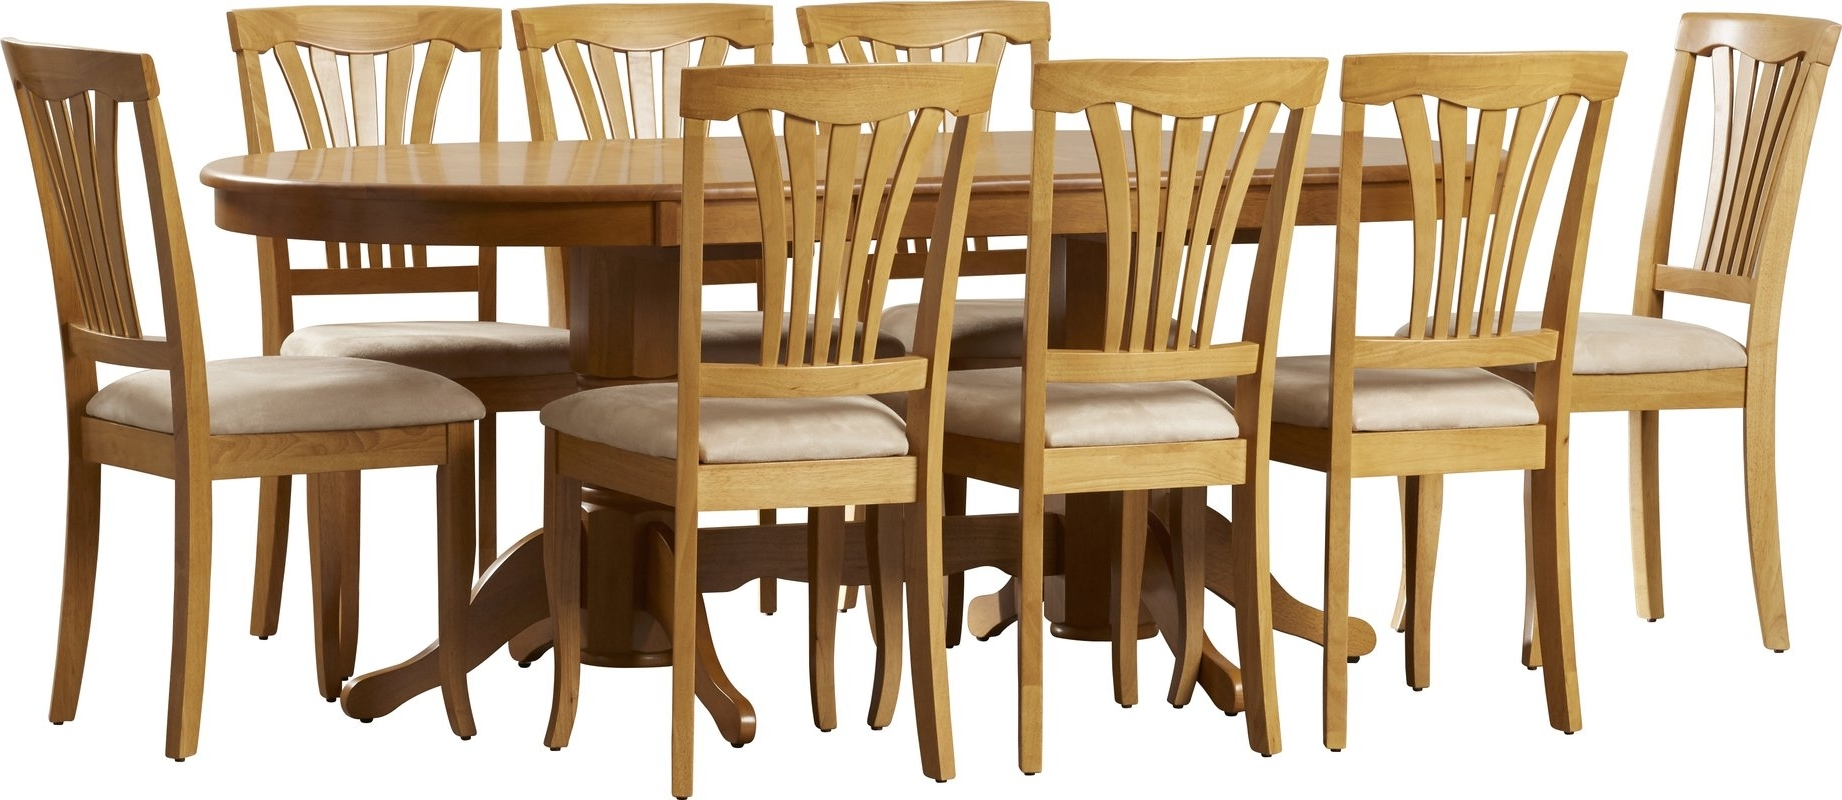 [%100+ [ 9 Piece Dining Room Sets ] | 100 9 Pc Dining Room Sets Lark Pertaining To Best And Newest Caira 9 Piece Extension Dining Sets|Caira 9 Piece Extension Dining Sets For Well Known 100+ [ 9 Piece Dining Room Sets ] | 100 9 Pc Dining Room Sets Lark|2017 Caira 9 Piece Extension Dining Sets In 100+ [ 9 Piece Dining Room Sets ] | 100 9 Pc Dining Room Sets Lark|Widely Used 100+ [ 9 Piece Dining Room Sets ] | 100 9 Pc Dining Room Sets Lark Inside Caira 9 Piece Extension Dining Sets%] (View 1 of 25)